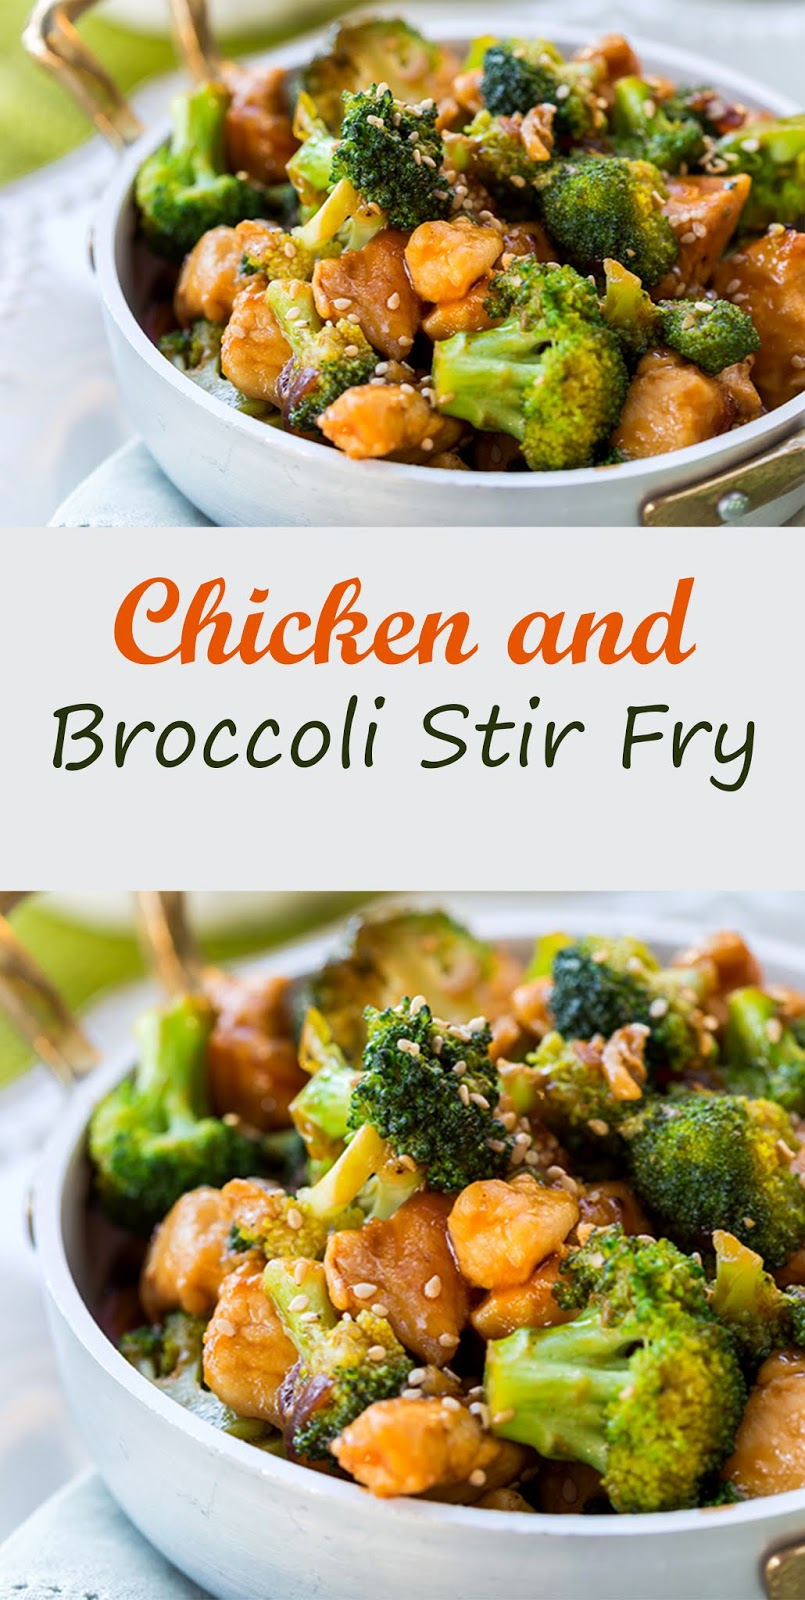 Chicken Broccoli Stir Fry Calories